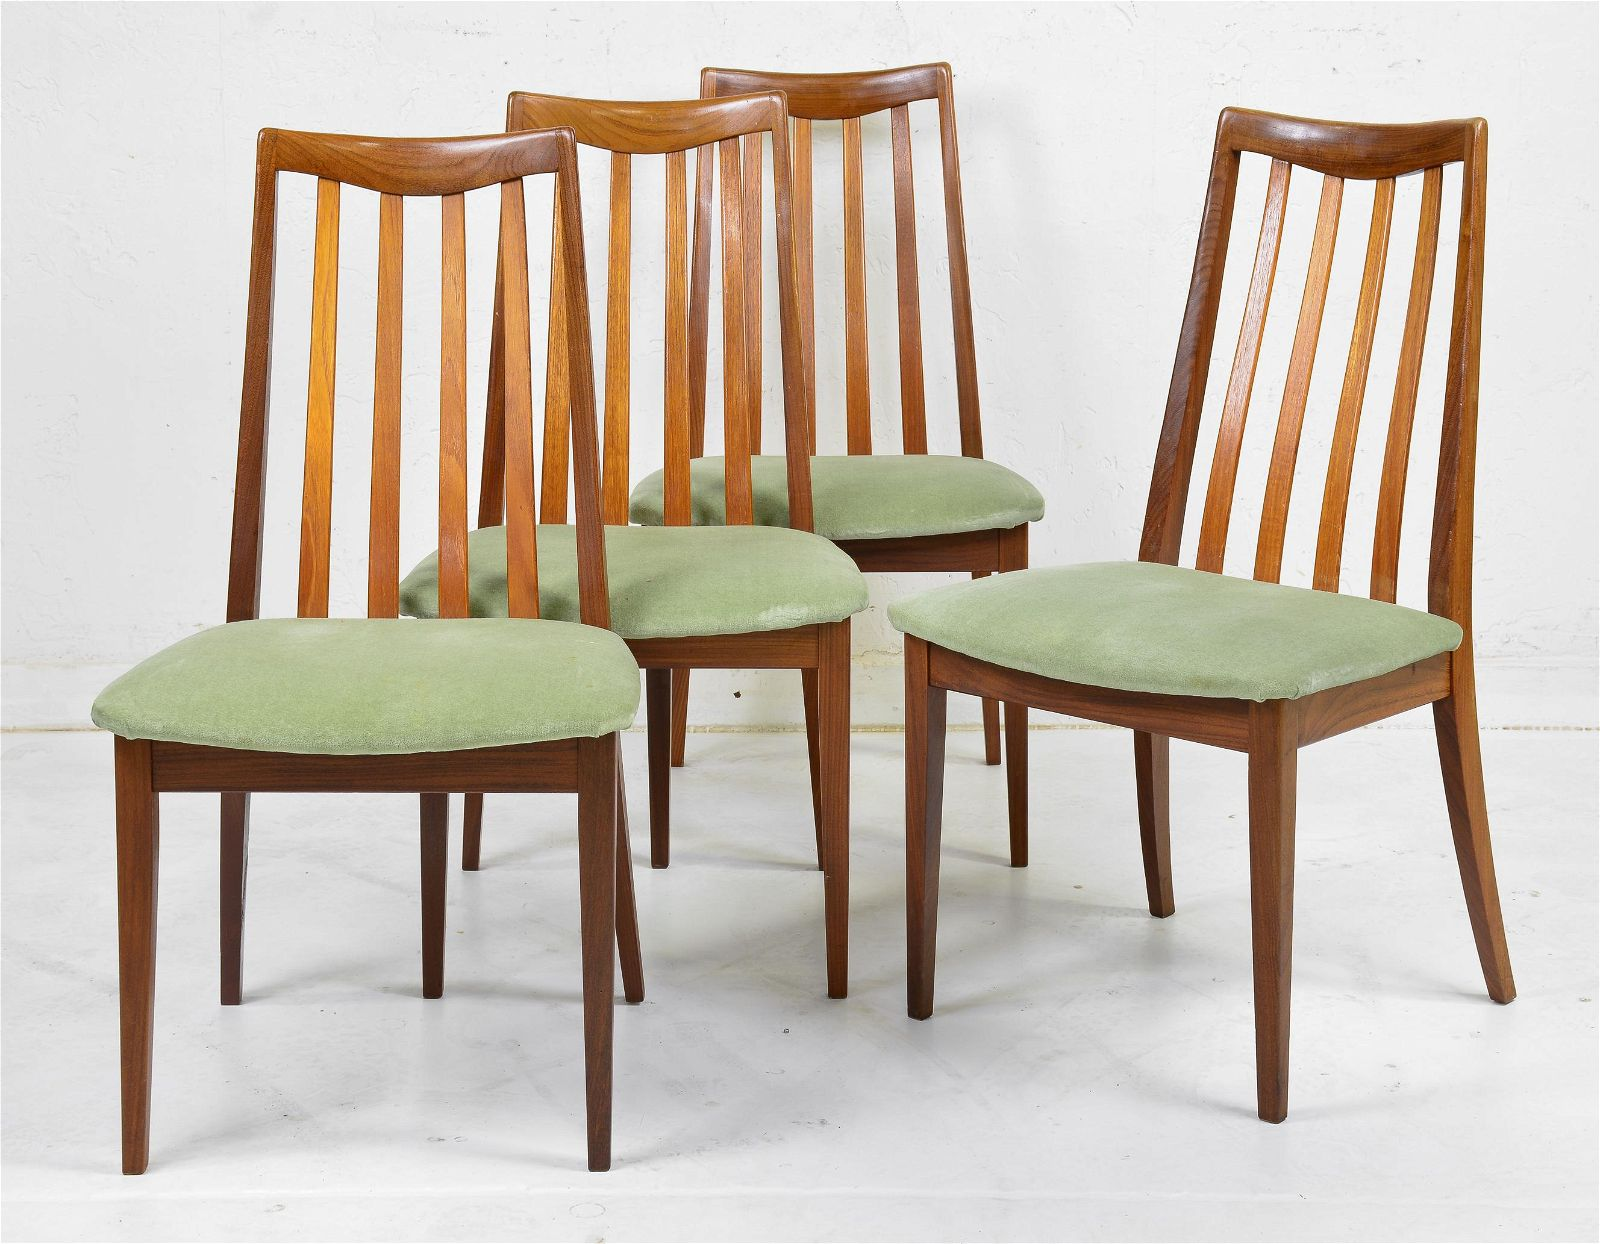 4 High Back Mid Century Dining Chairs - G-Plan Fresco